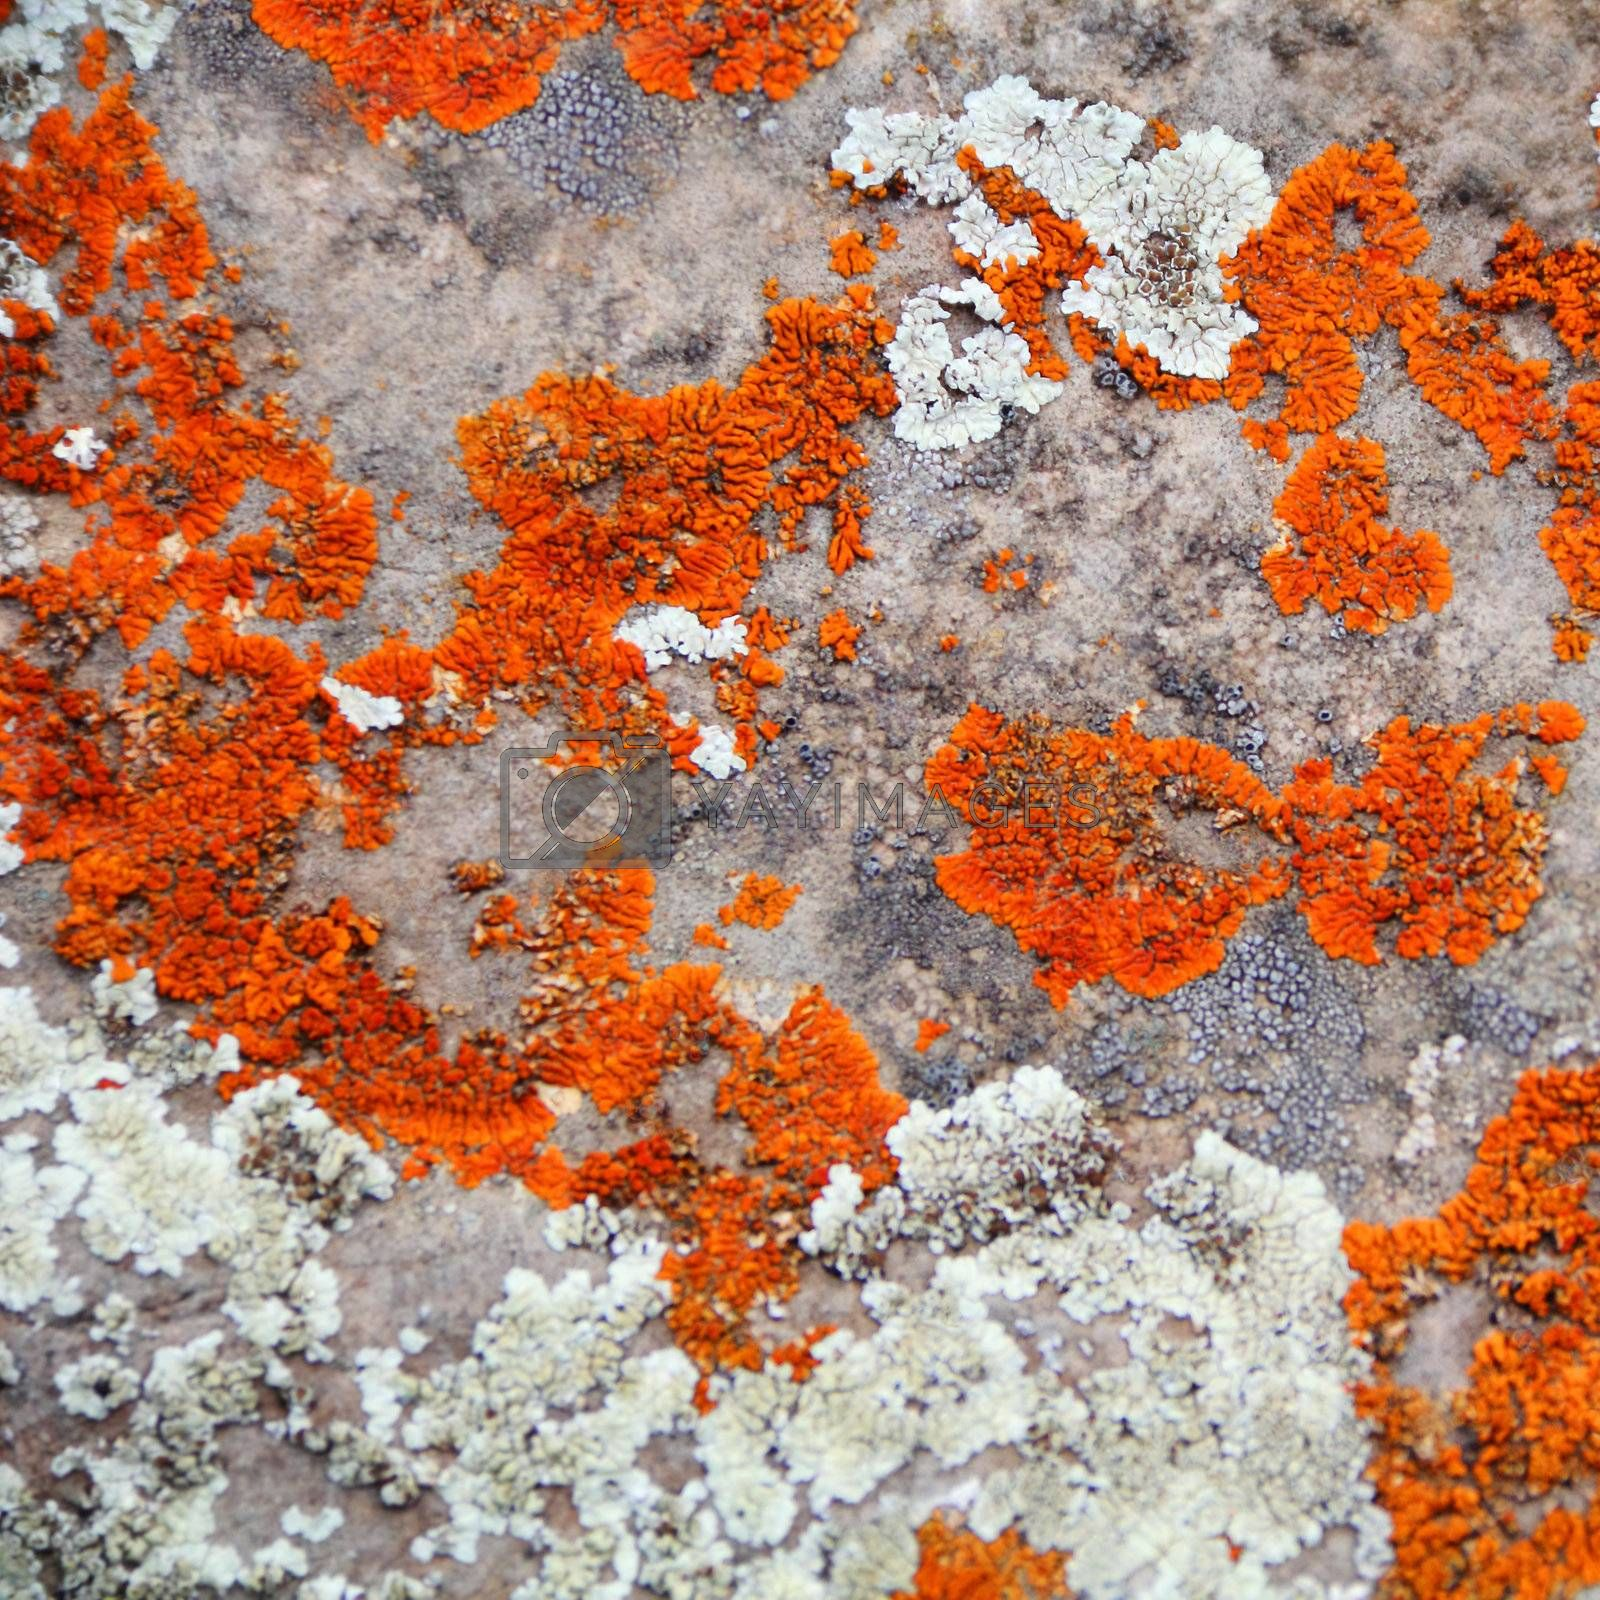 Image of texture with colorful mineral